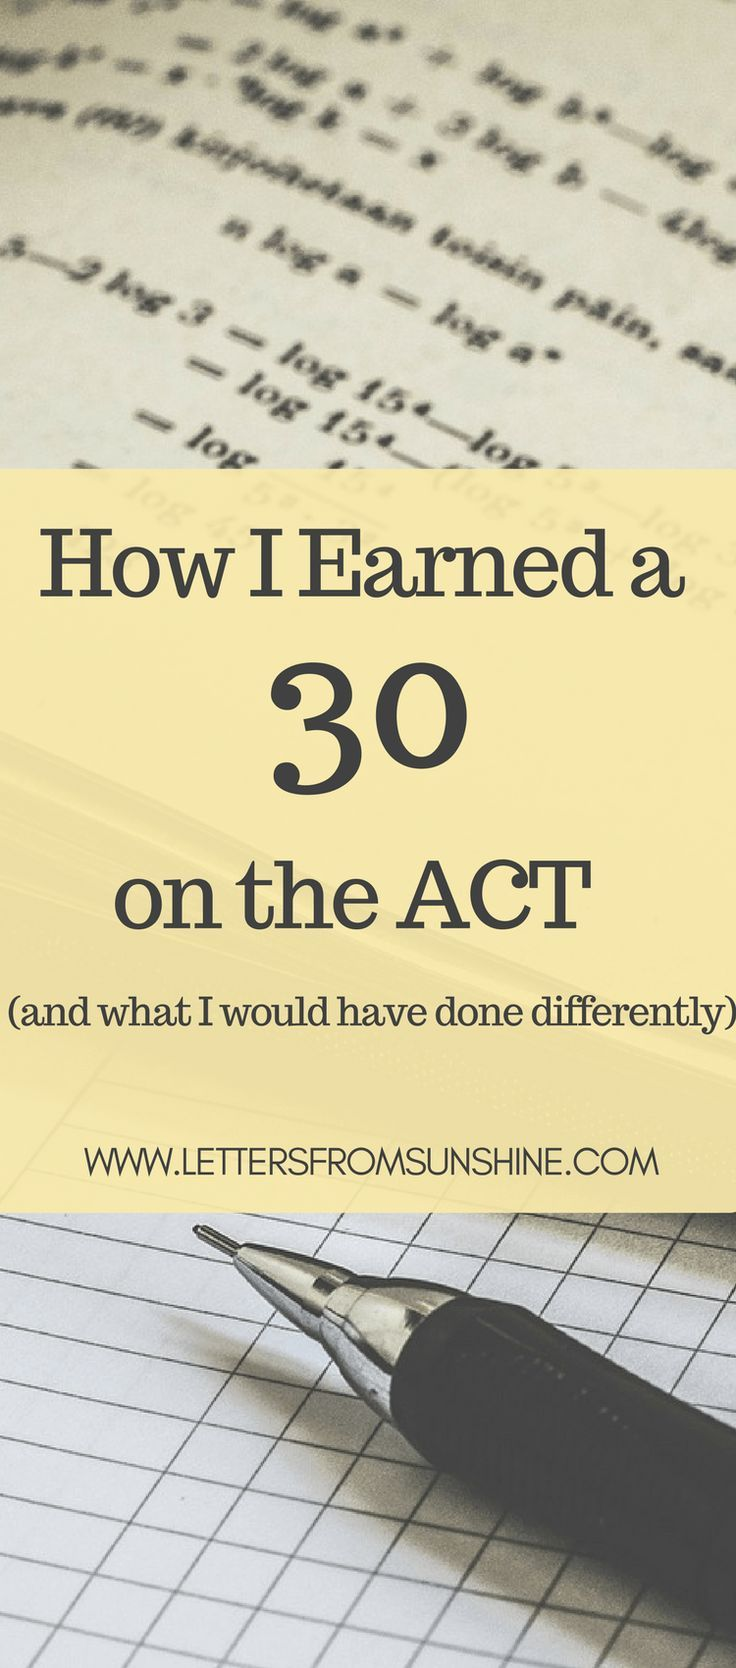 How I Earned a 30 on the ACT (and what I would have done differently) | Are you a college-bound student wanting to do well on the ACT to improve your chances of earning a good scholarship and getting admitted to college? I am revealing how I earned a 30 on the ACT, as well as what I would have done differently. www.lettersfromsunshine.com